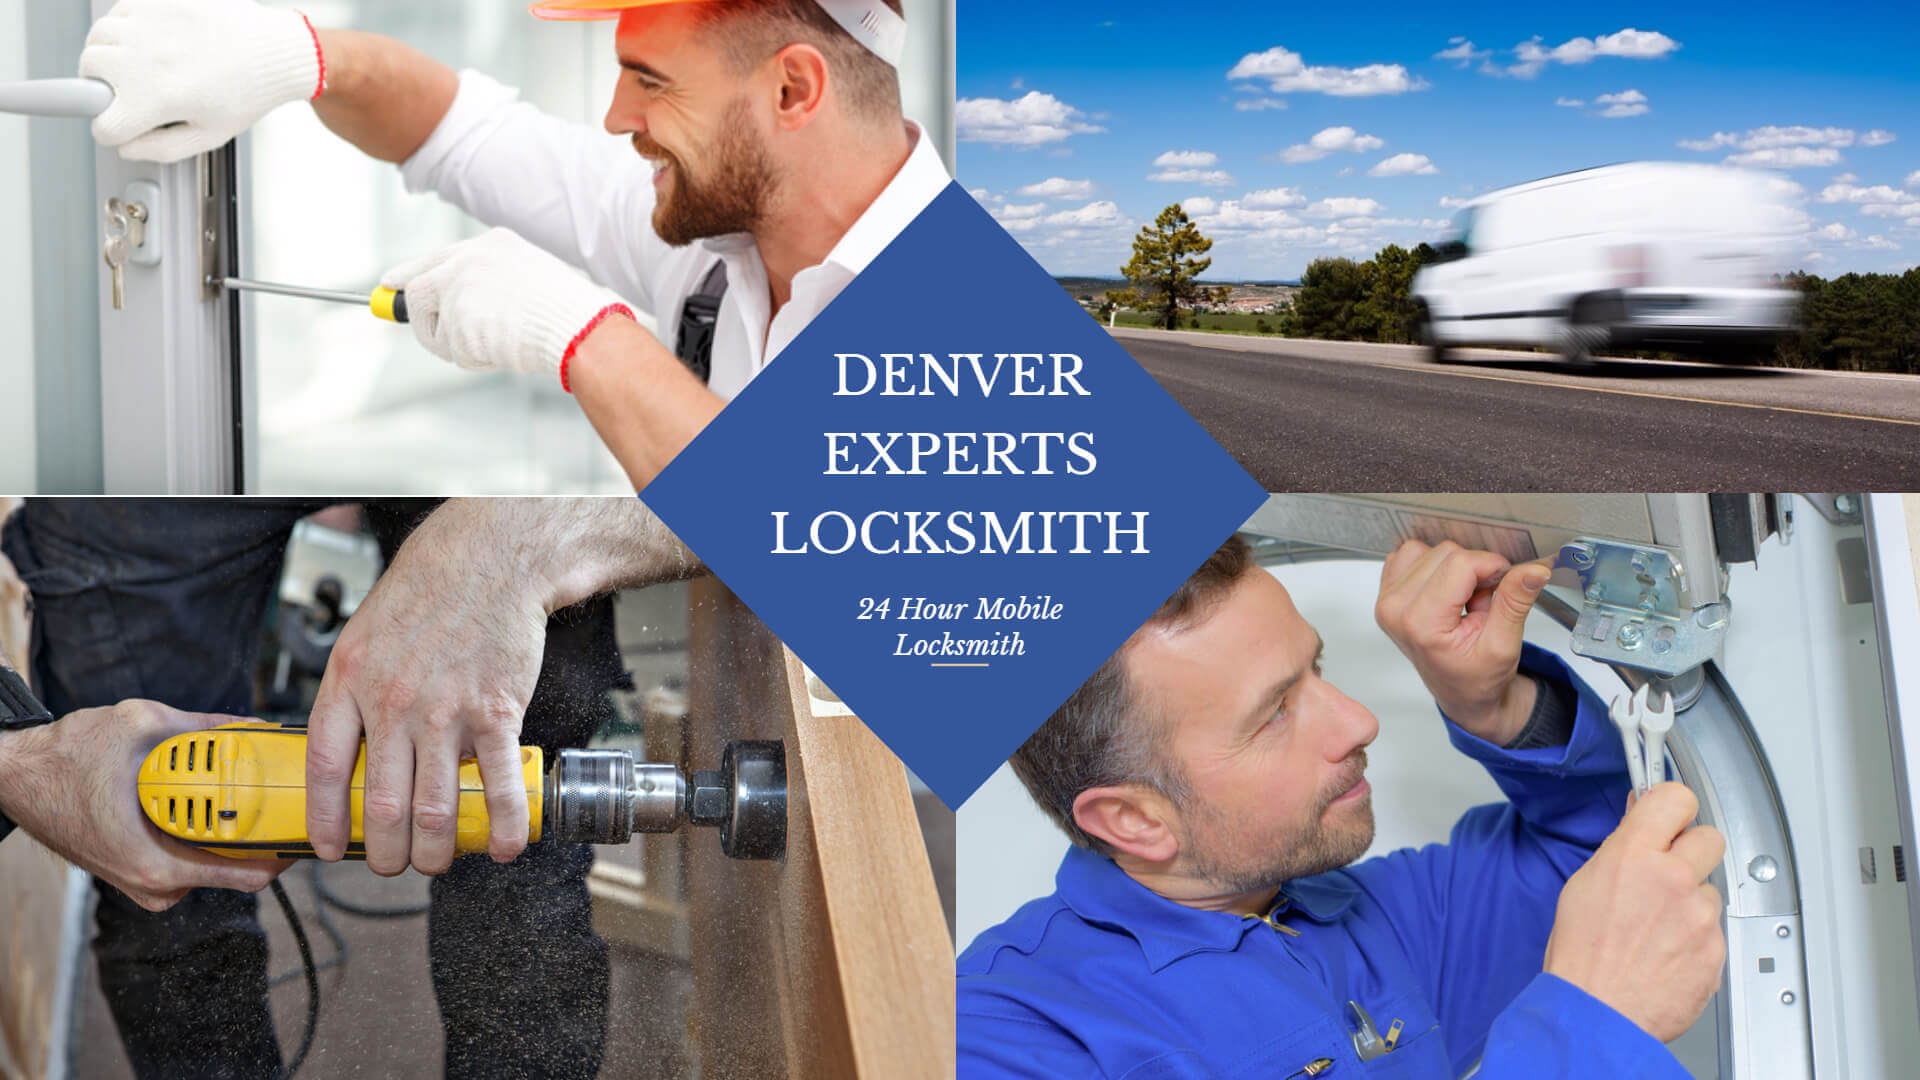 Key Fob Replacement Near Me >> Denver Experts Locksmith Infographic | (303) 749-0505